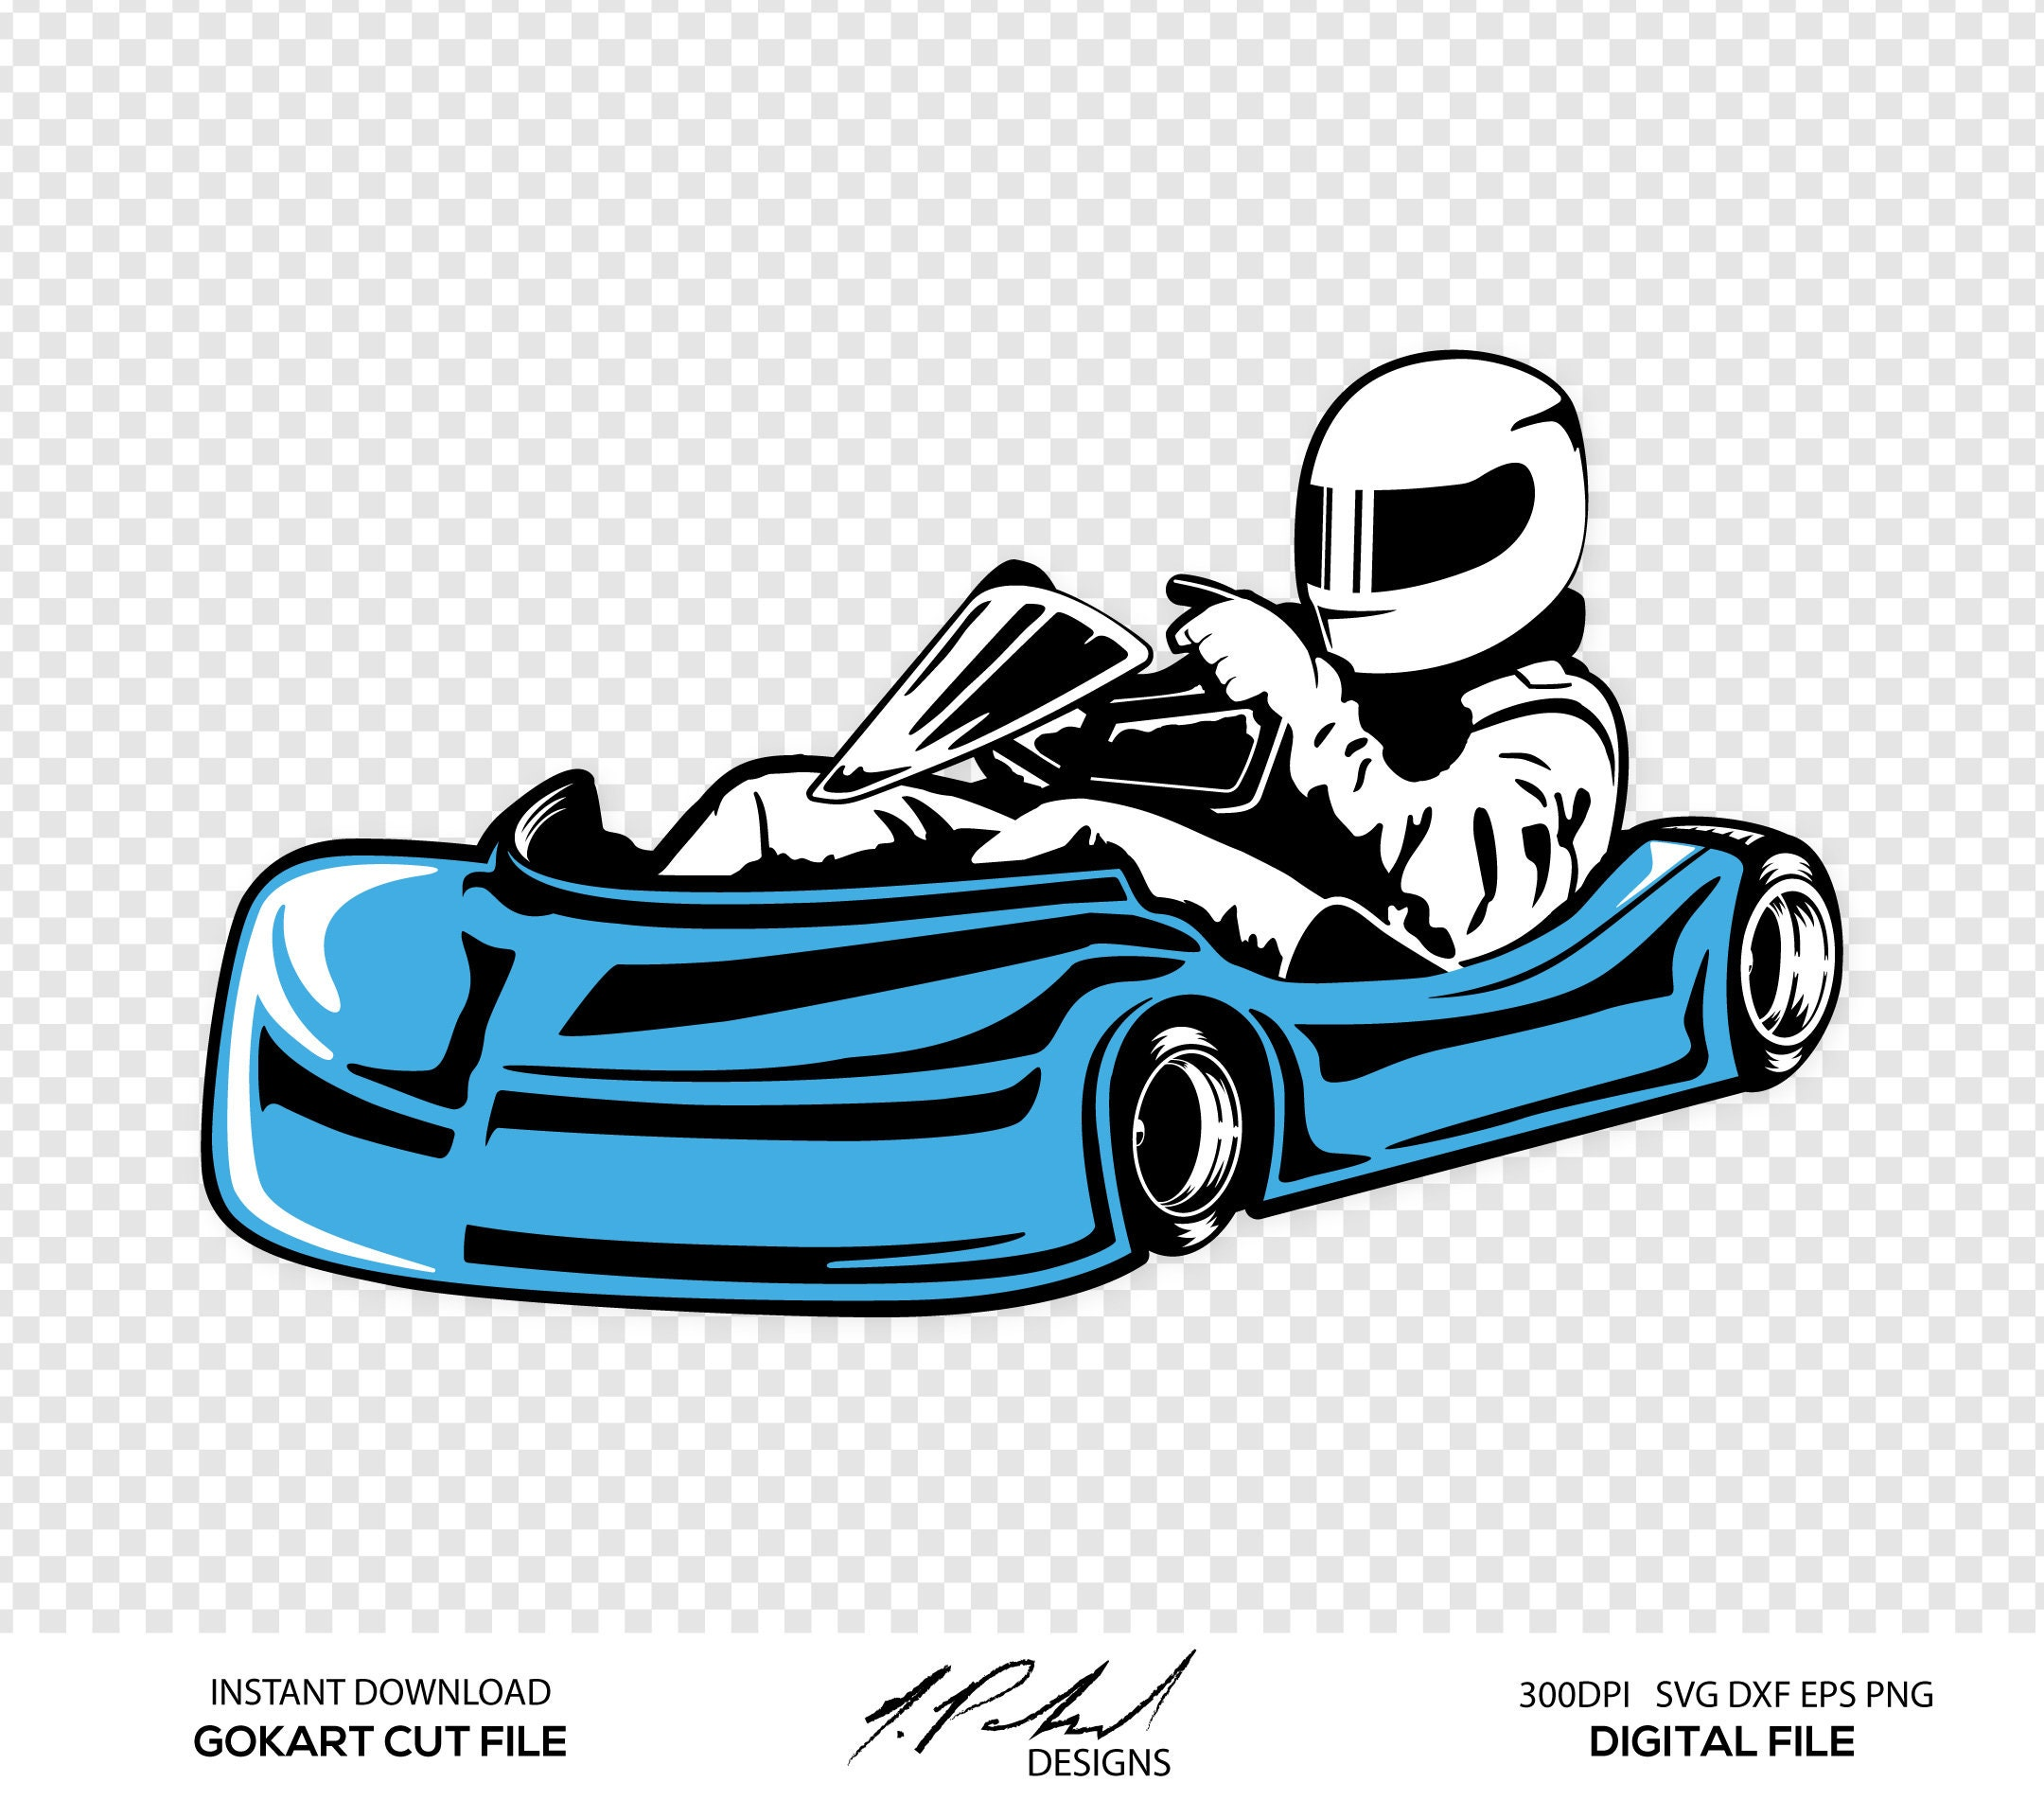 GoKart Digital Cut Files Digital Files GoKart SVG Go | Etsy